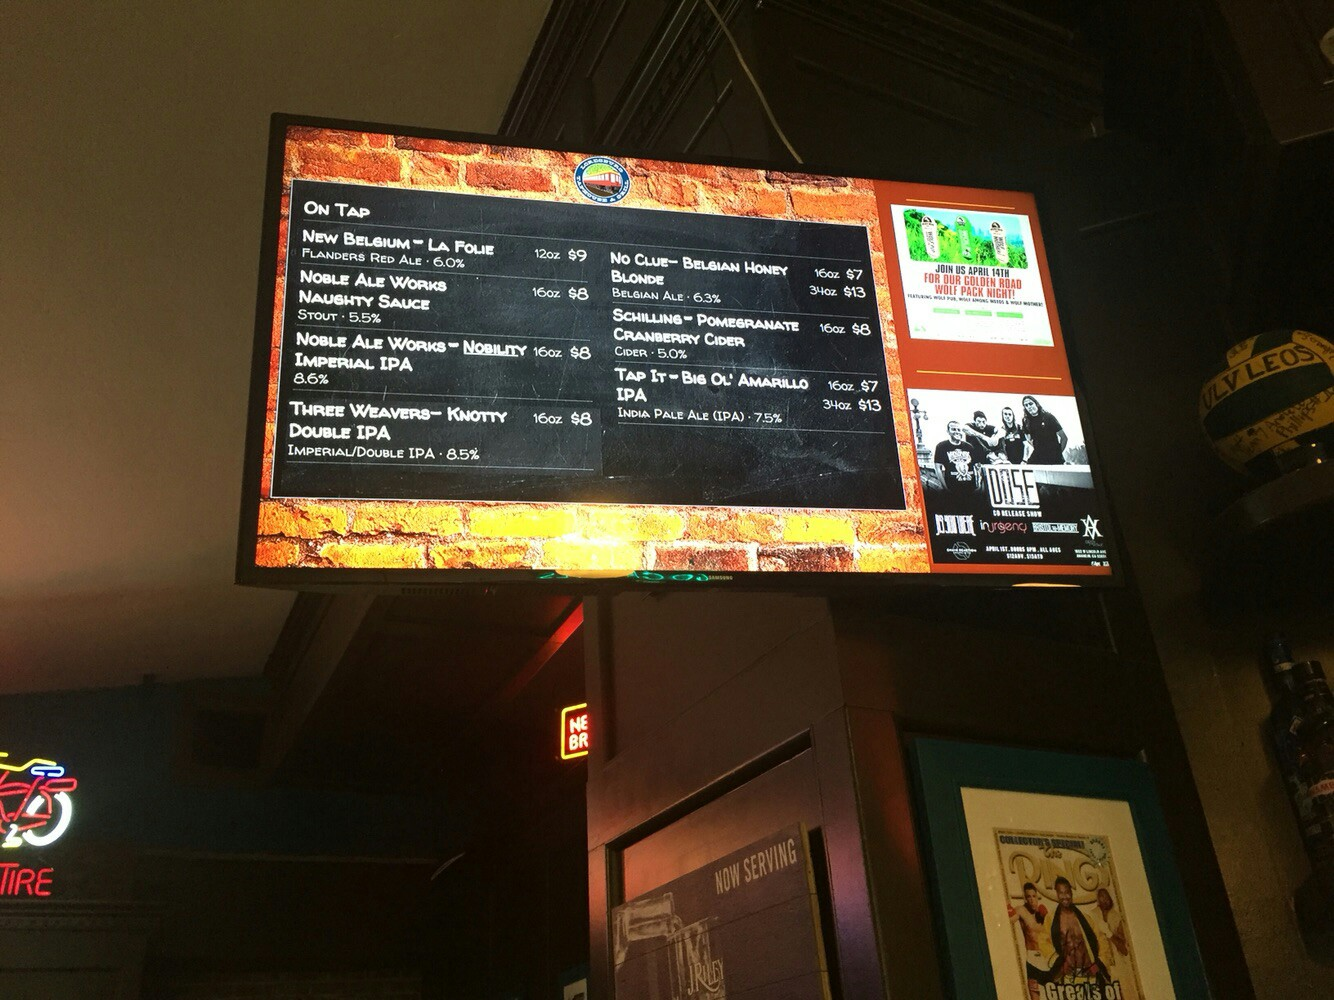 University of La Verne Digital Signage Board